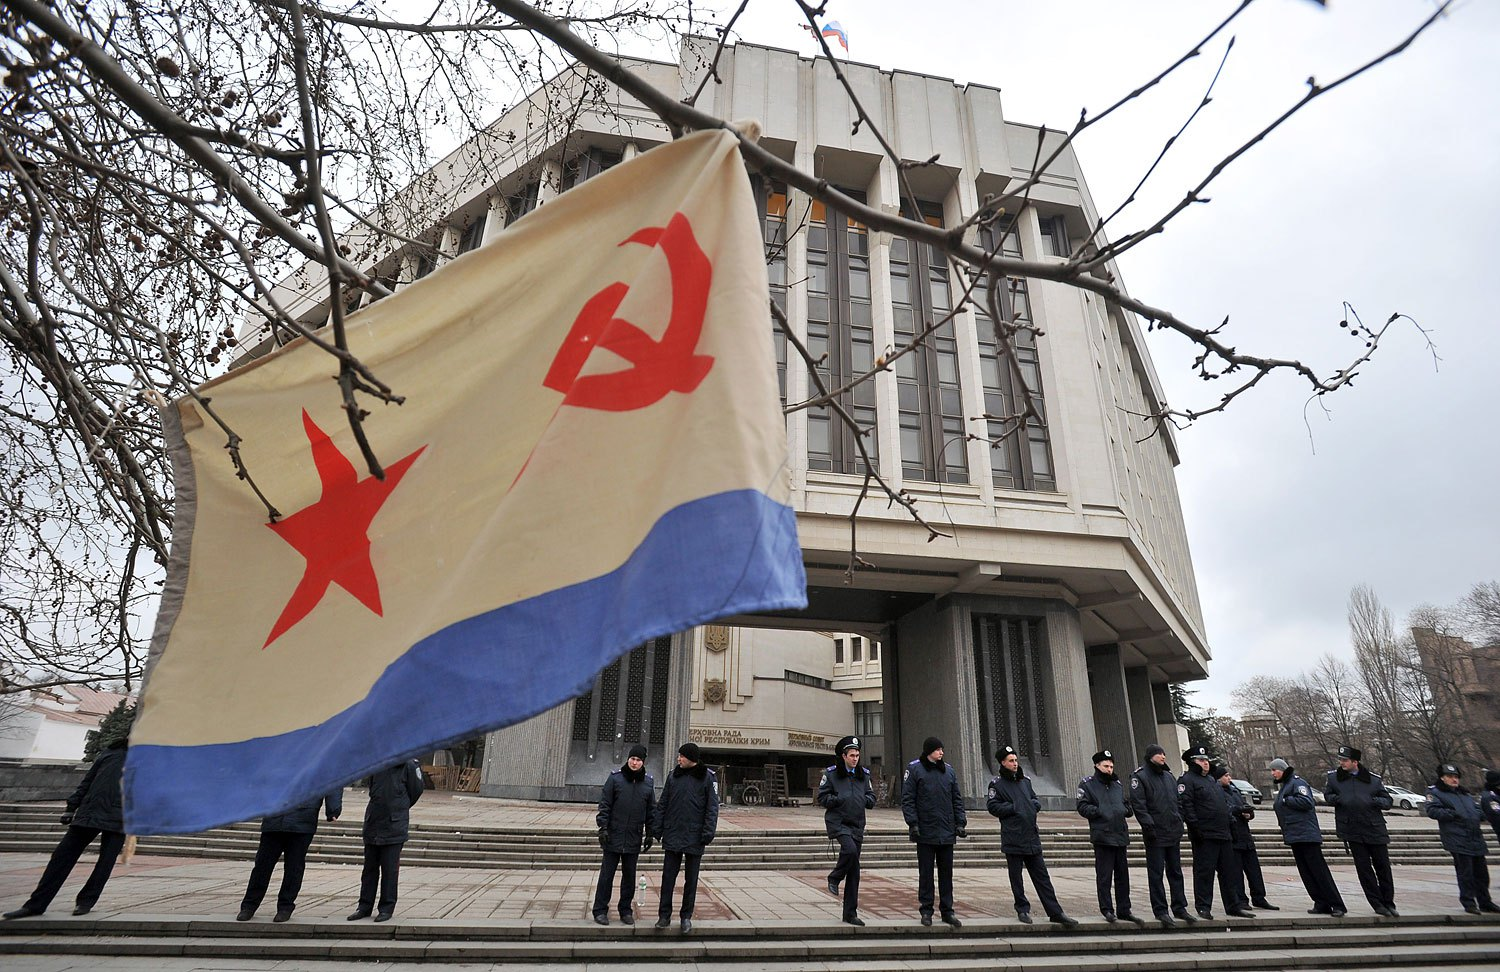 A flag of the Russian Navy hangs from a tree as policemen stand guard in front of the local parliament building on Feb. 28, 2014 in Simferopol.